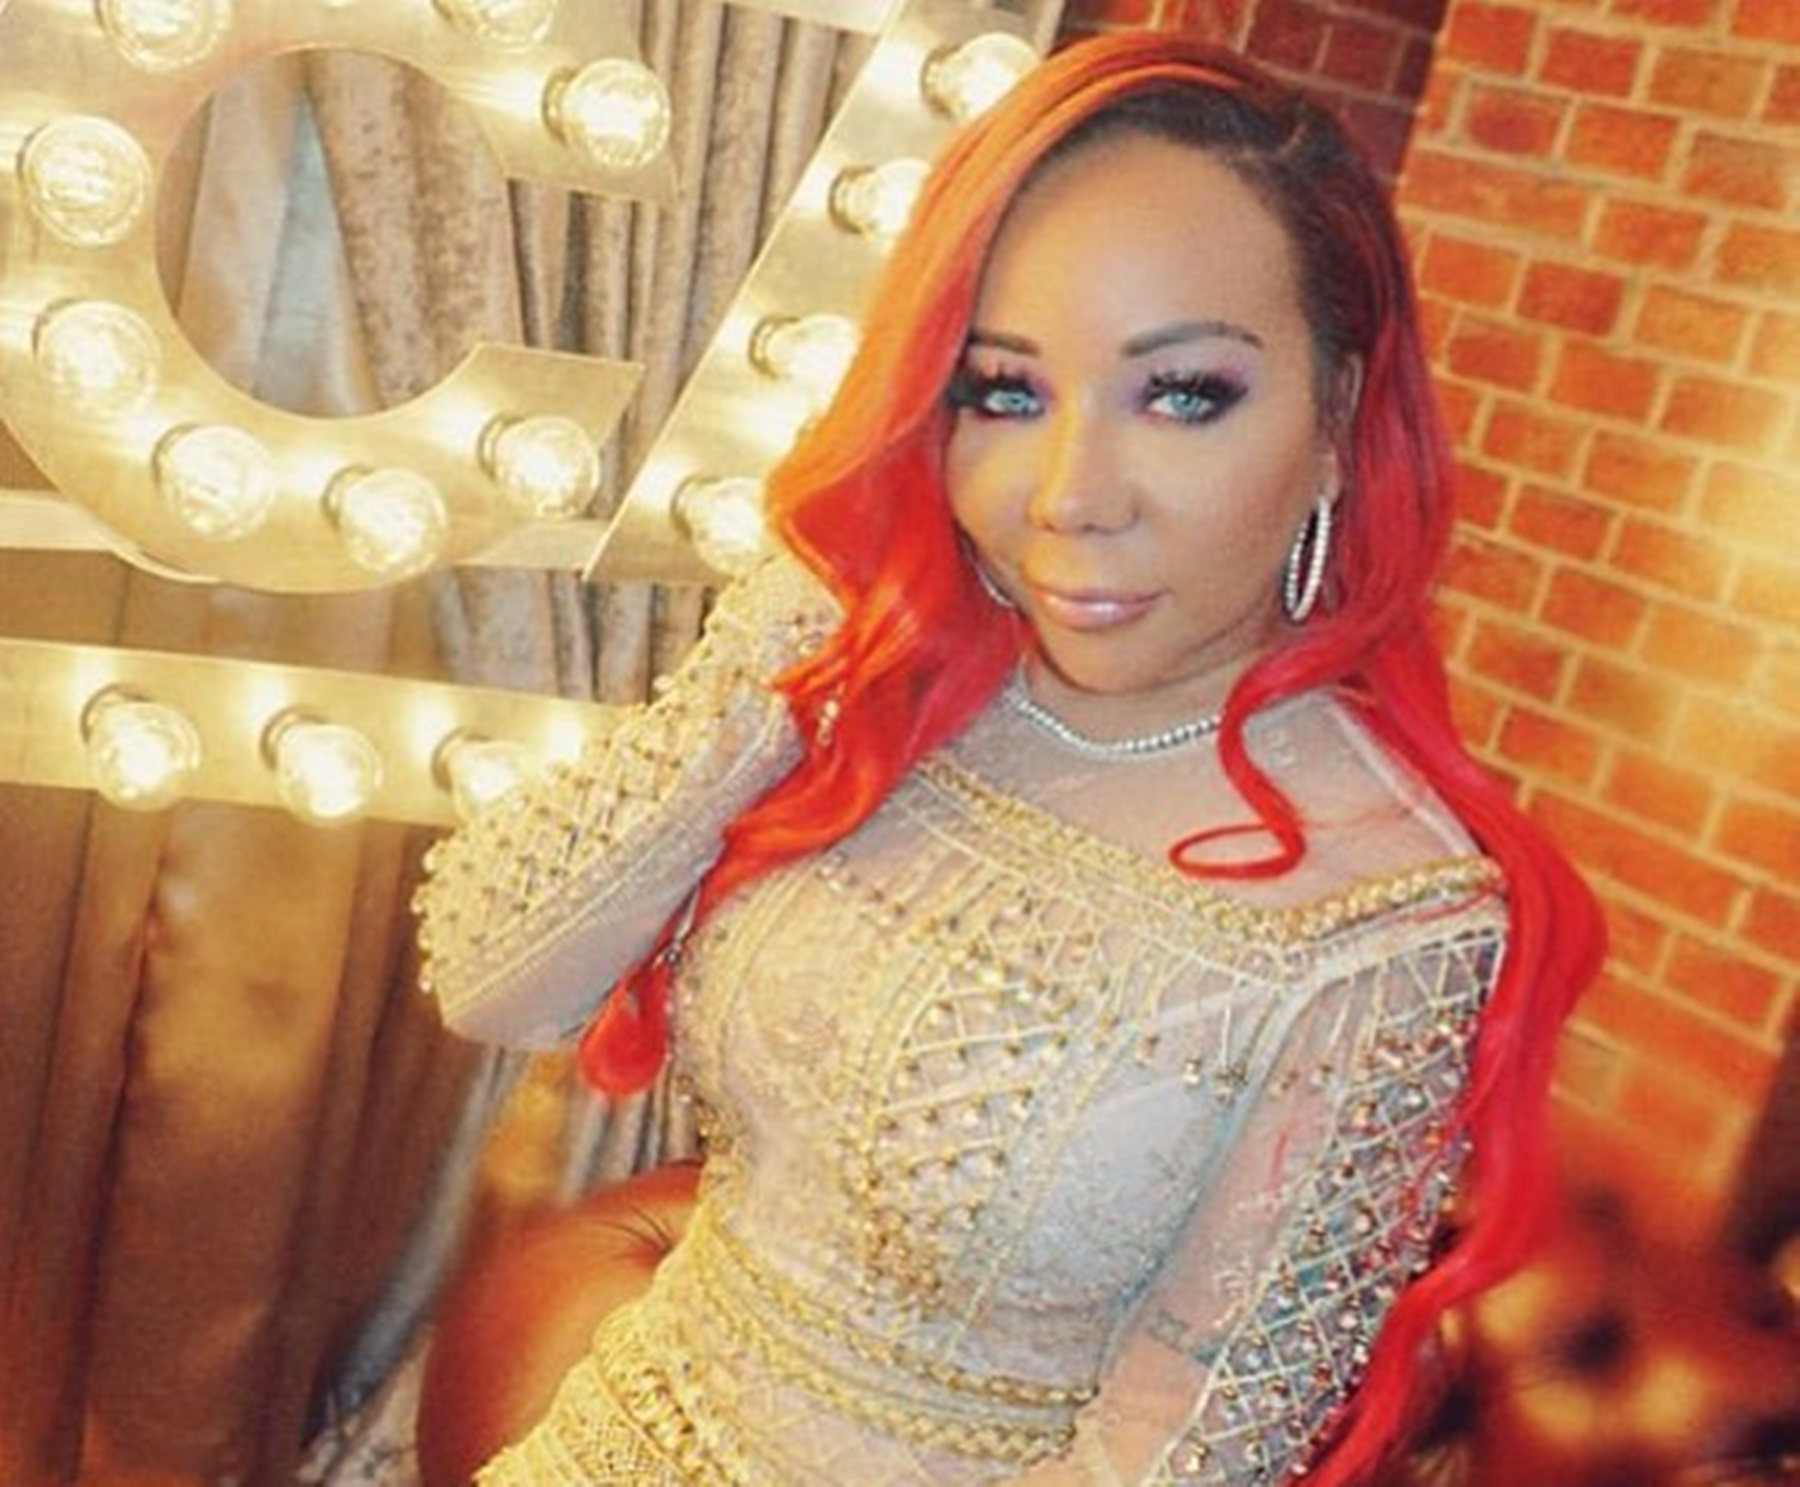 tiny-harris-video-with-heiress-harris-will-make-your-day